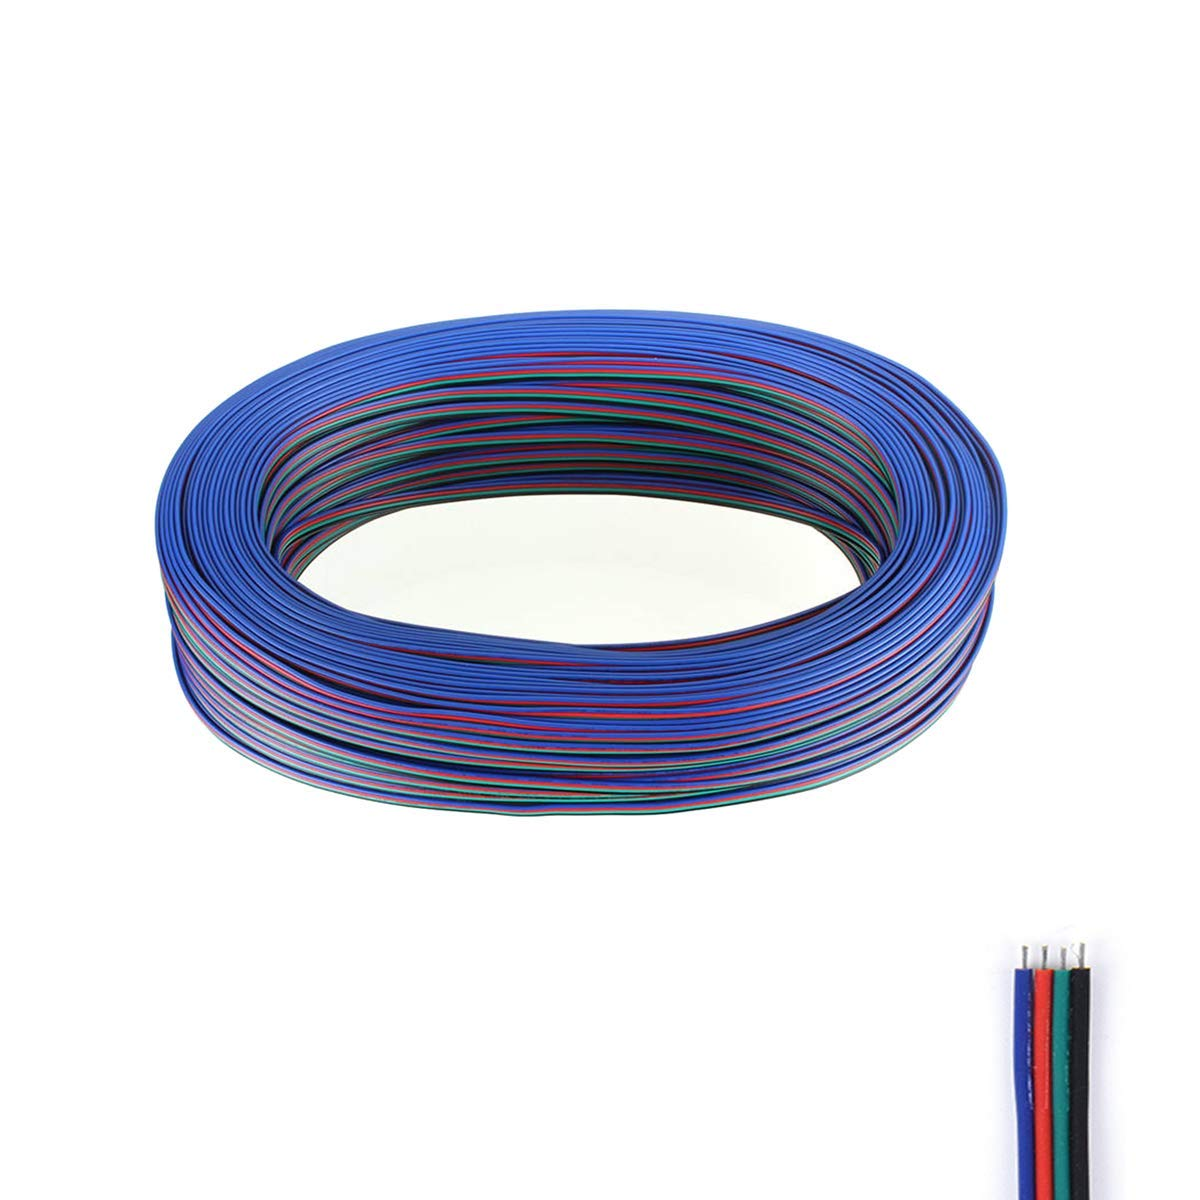 Cheap Rgb Led Strip Wire Find Deals On Line At Wiring Lights Get Quotations Fntek 50ft 4 Pin Extension Cable Cord For 5050 3528